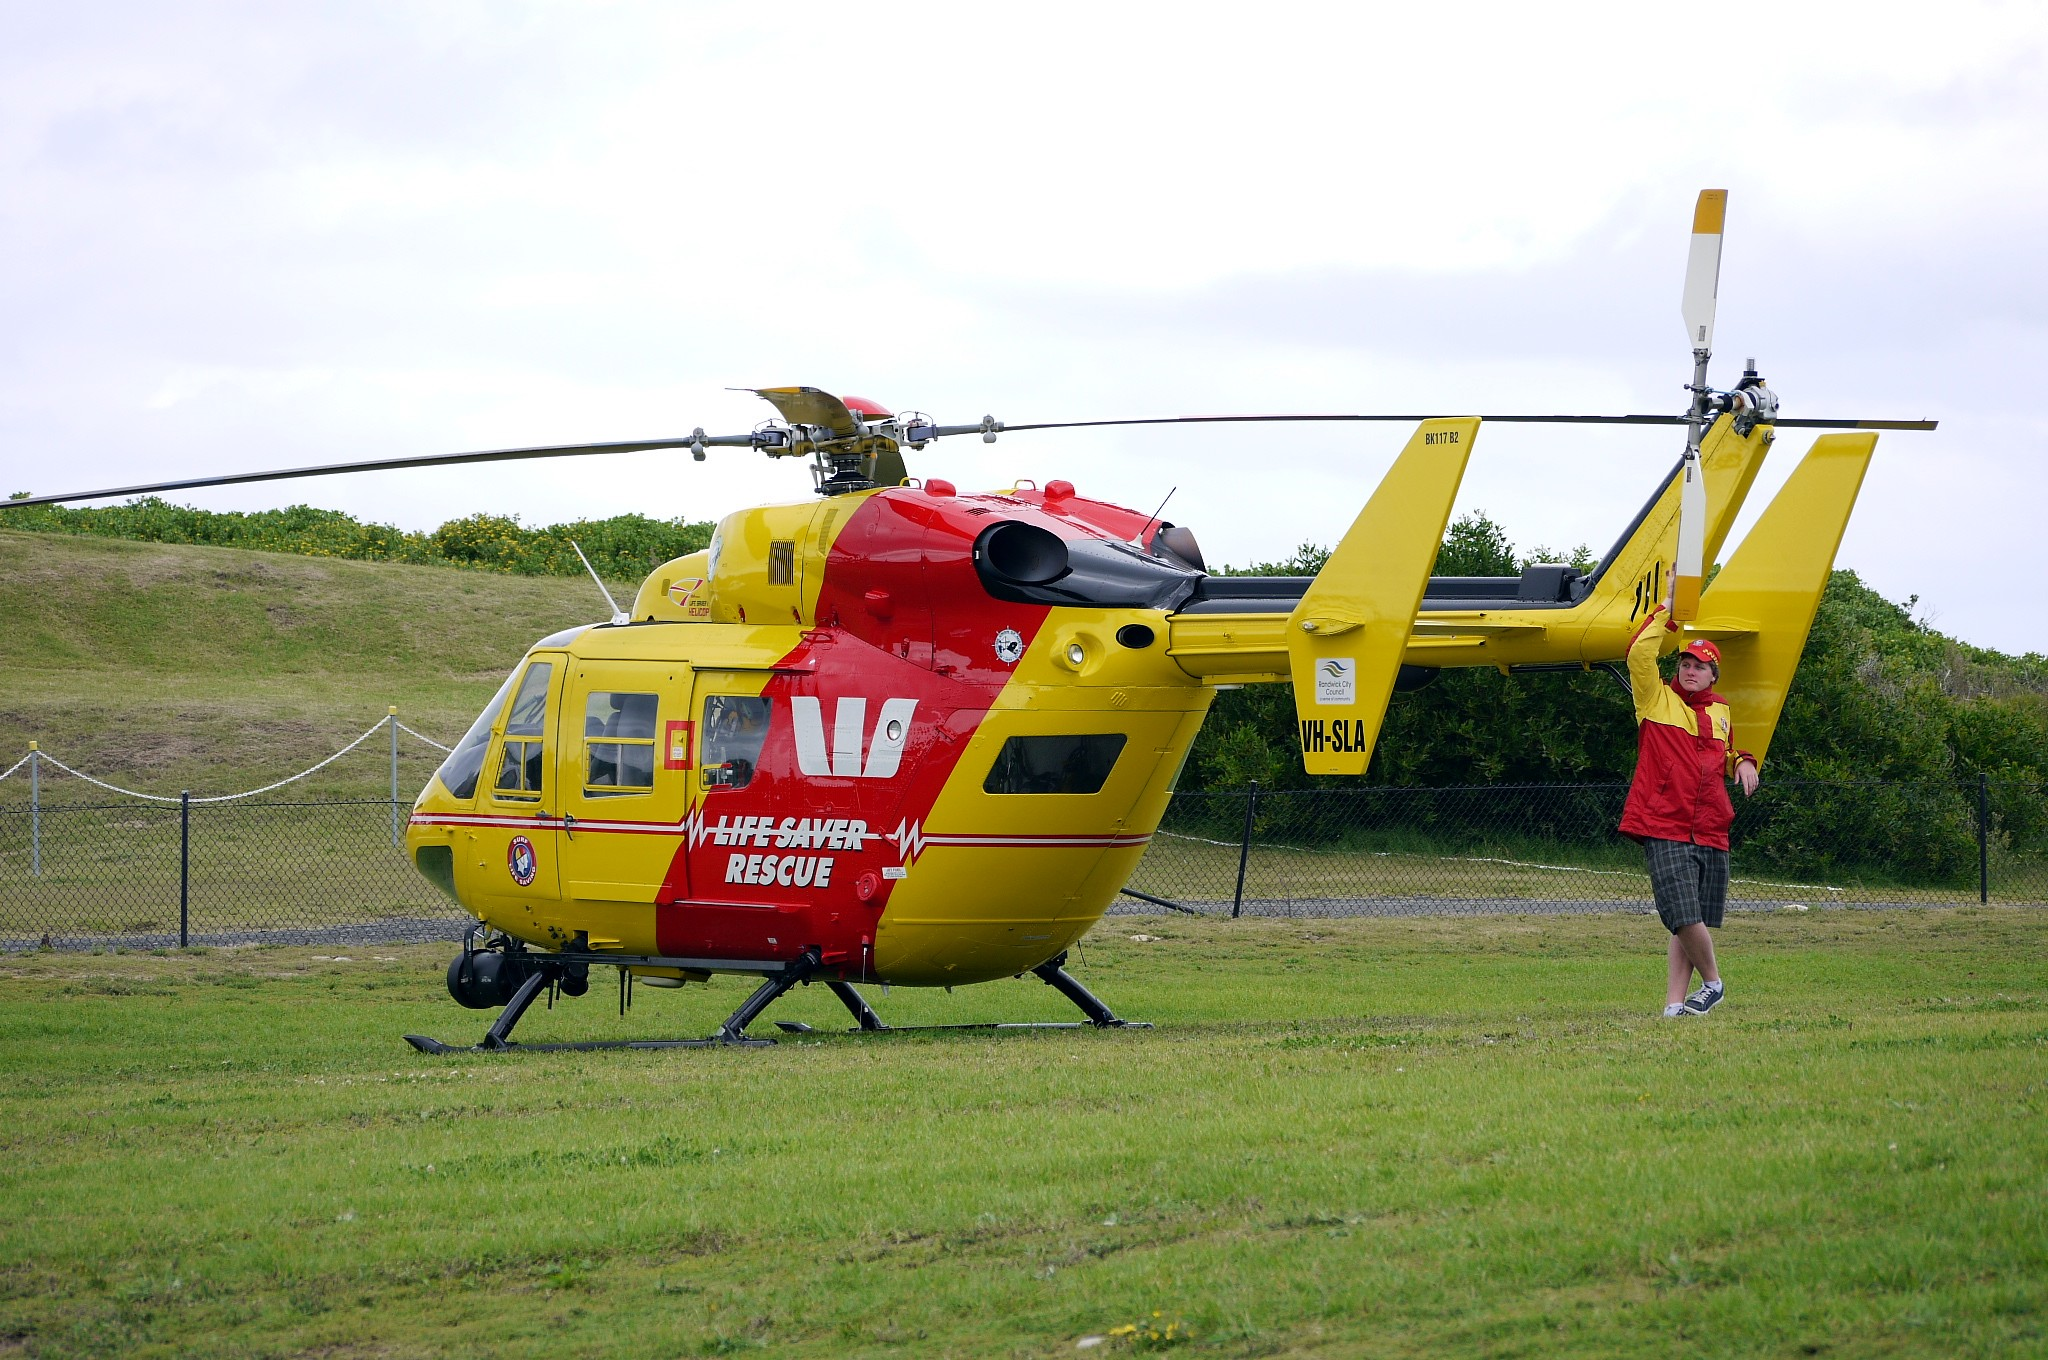 Pics photos police background police background police background - File Westpac Rescue Helicopter Service Bk 117 Flickr